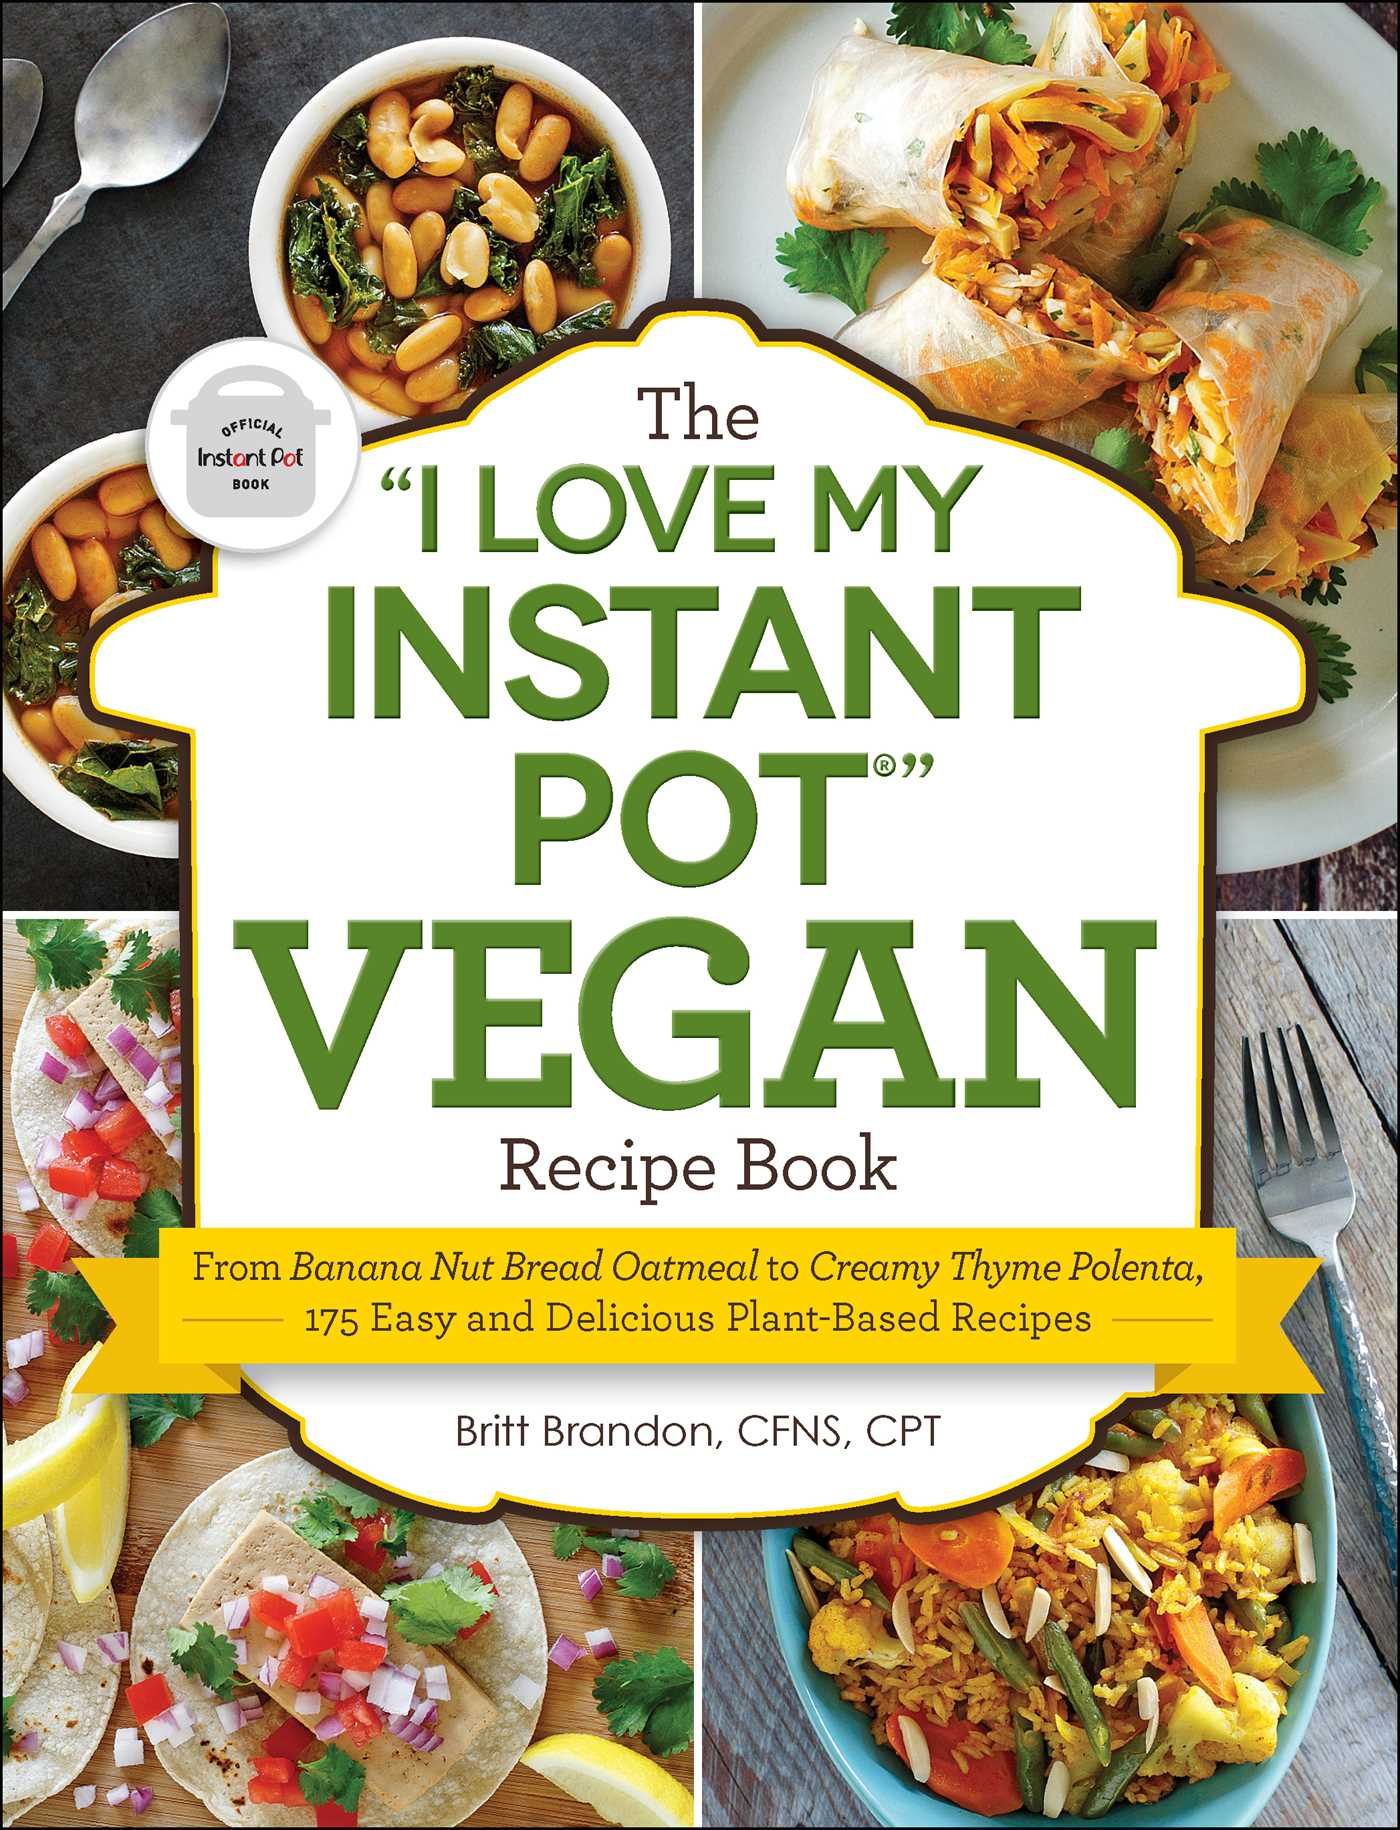 The i love my instant pot vegan recipe book 9781507205761 hr